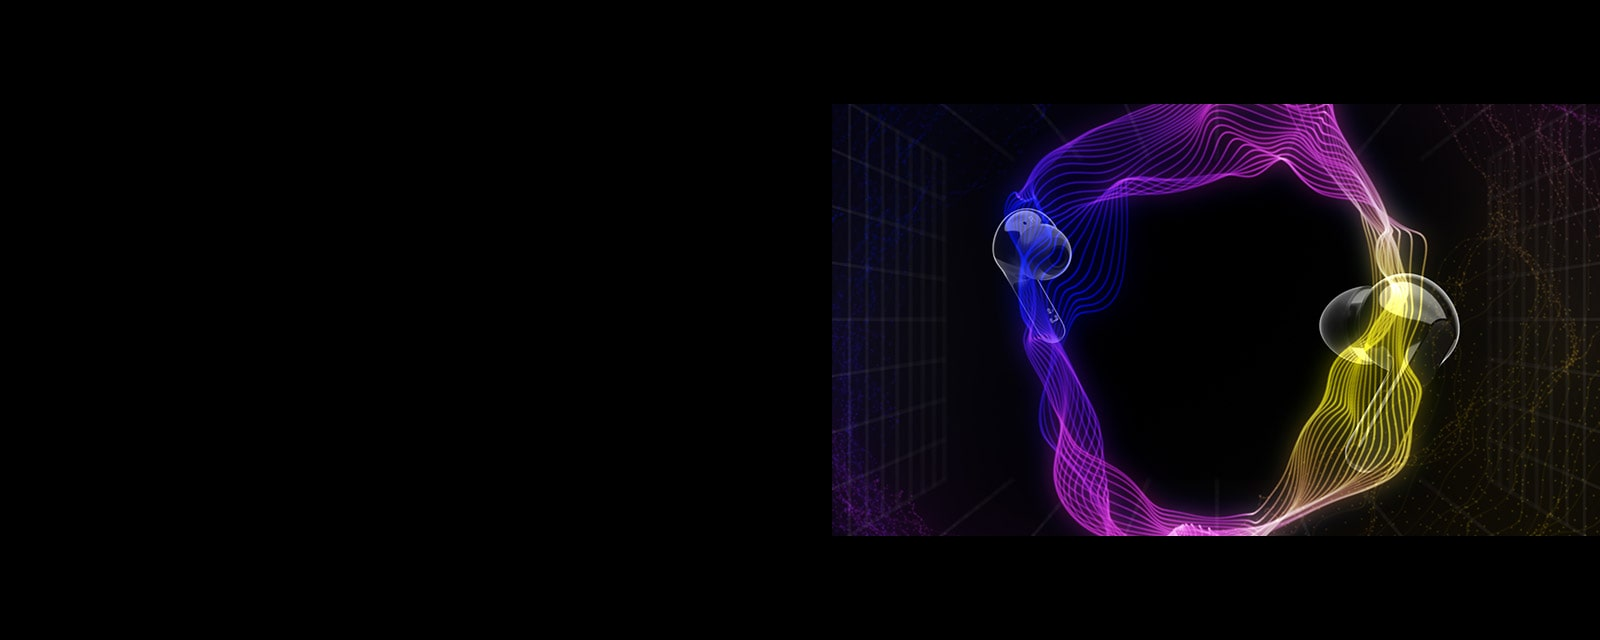 An image of two earbuds floating in a virtual space with colorful lighting surrounding the space